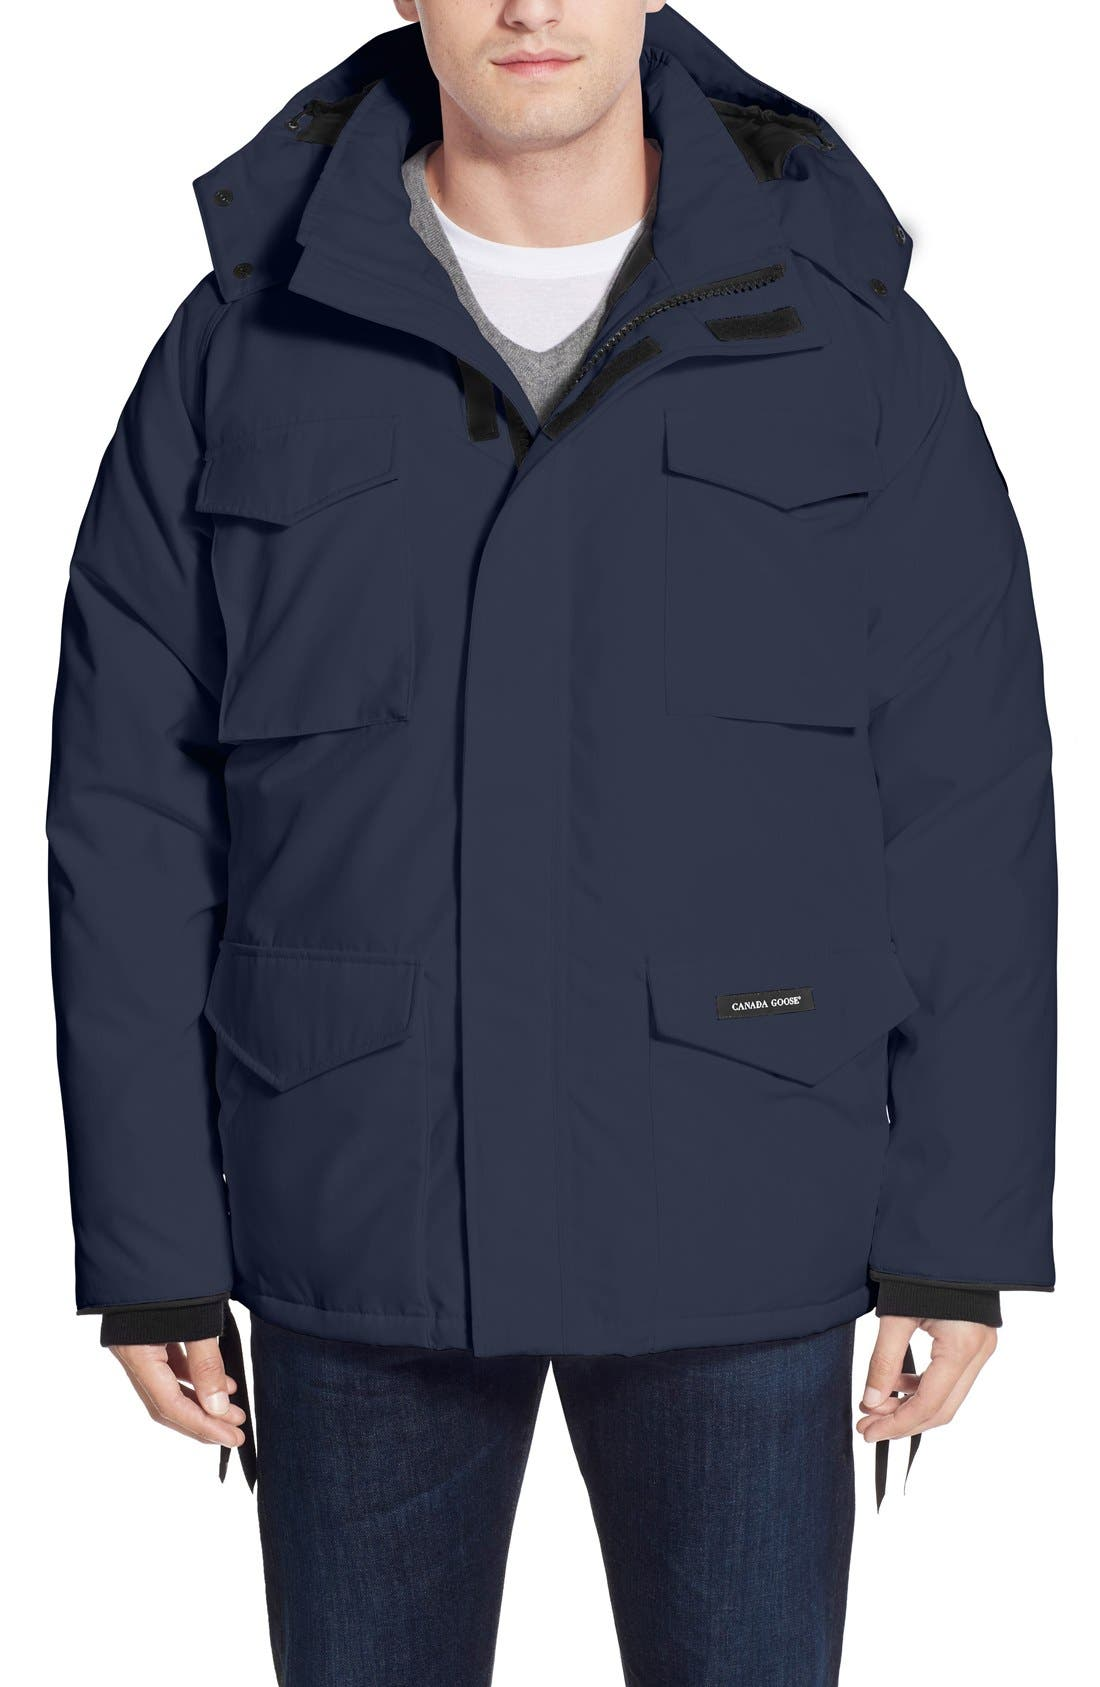 Main Image - Canada Goose 'Constable' Regular Fit Water Resistant Down Parka